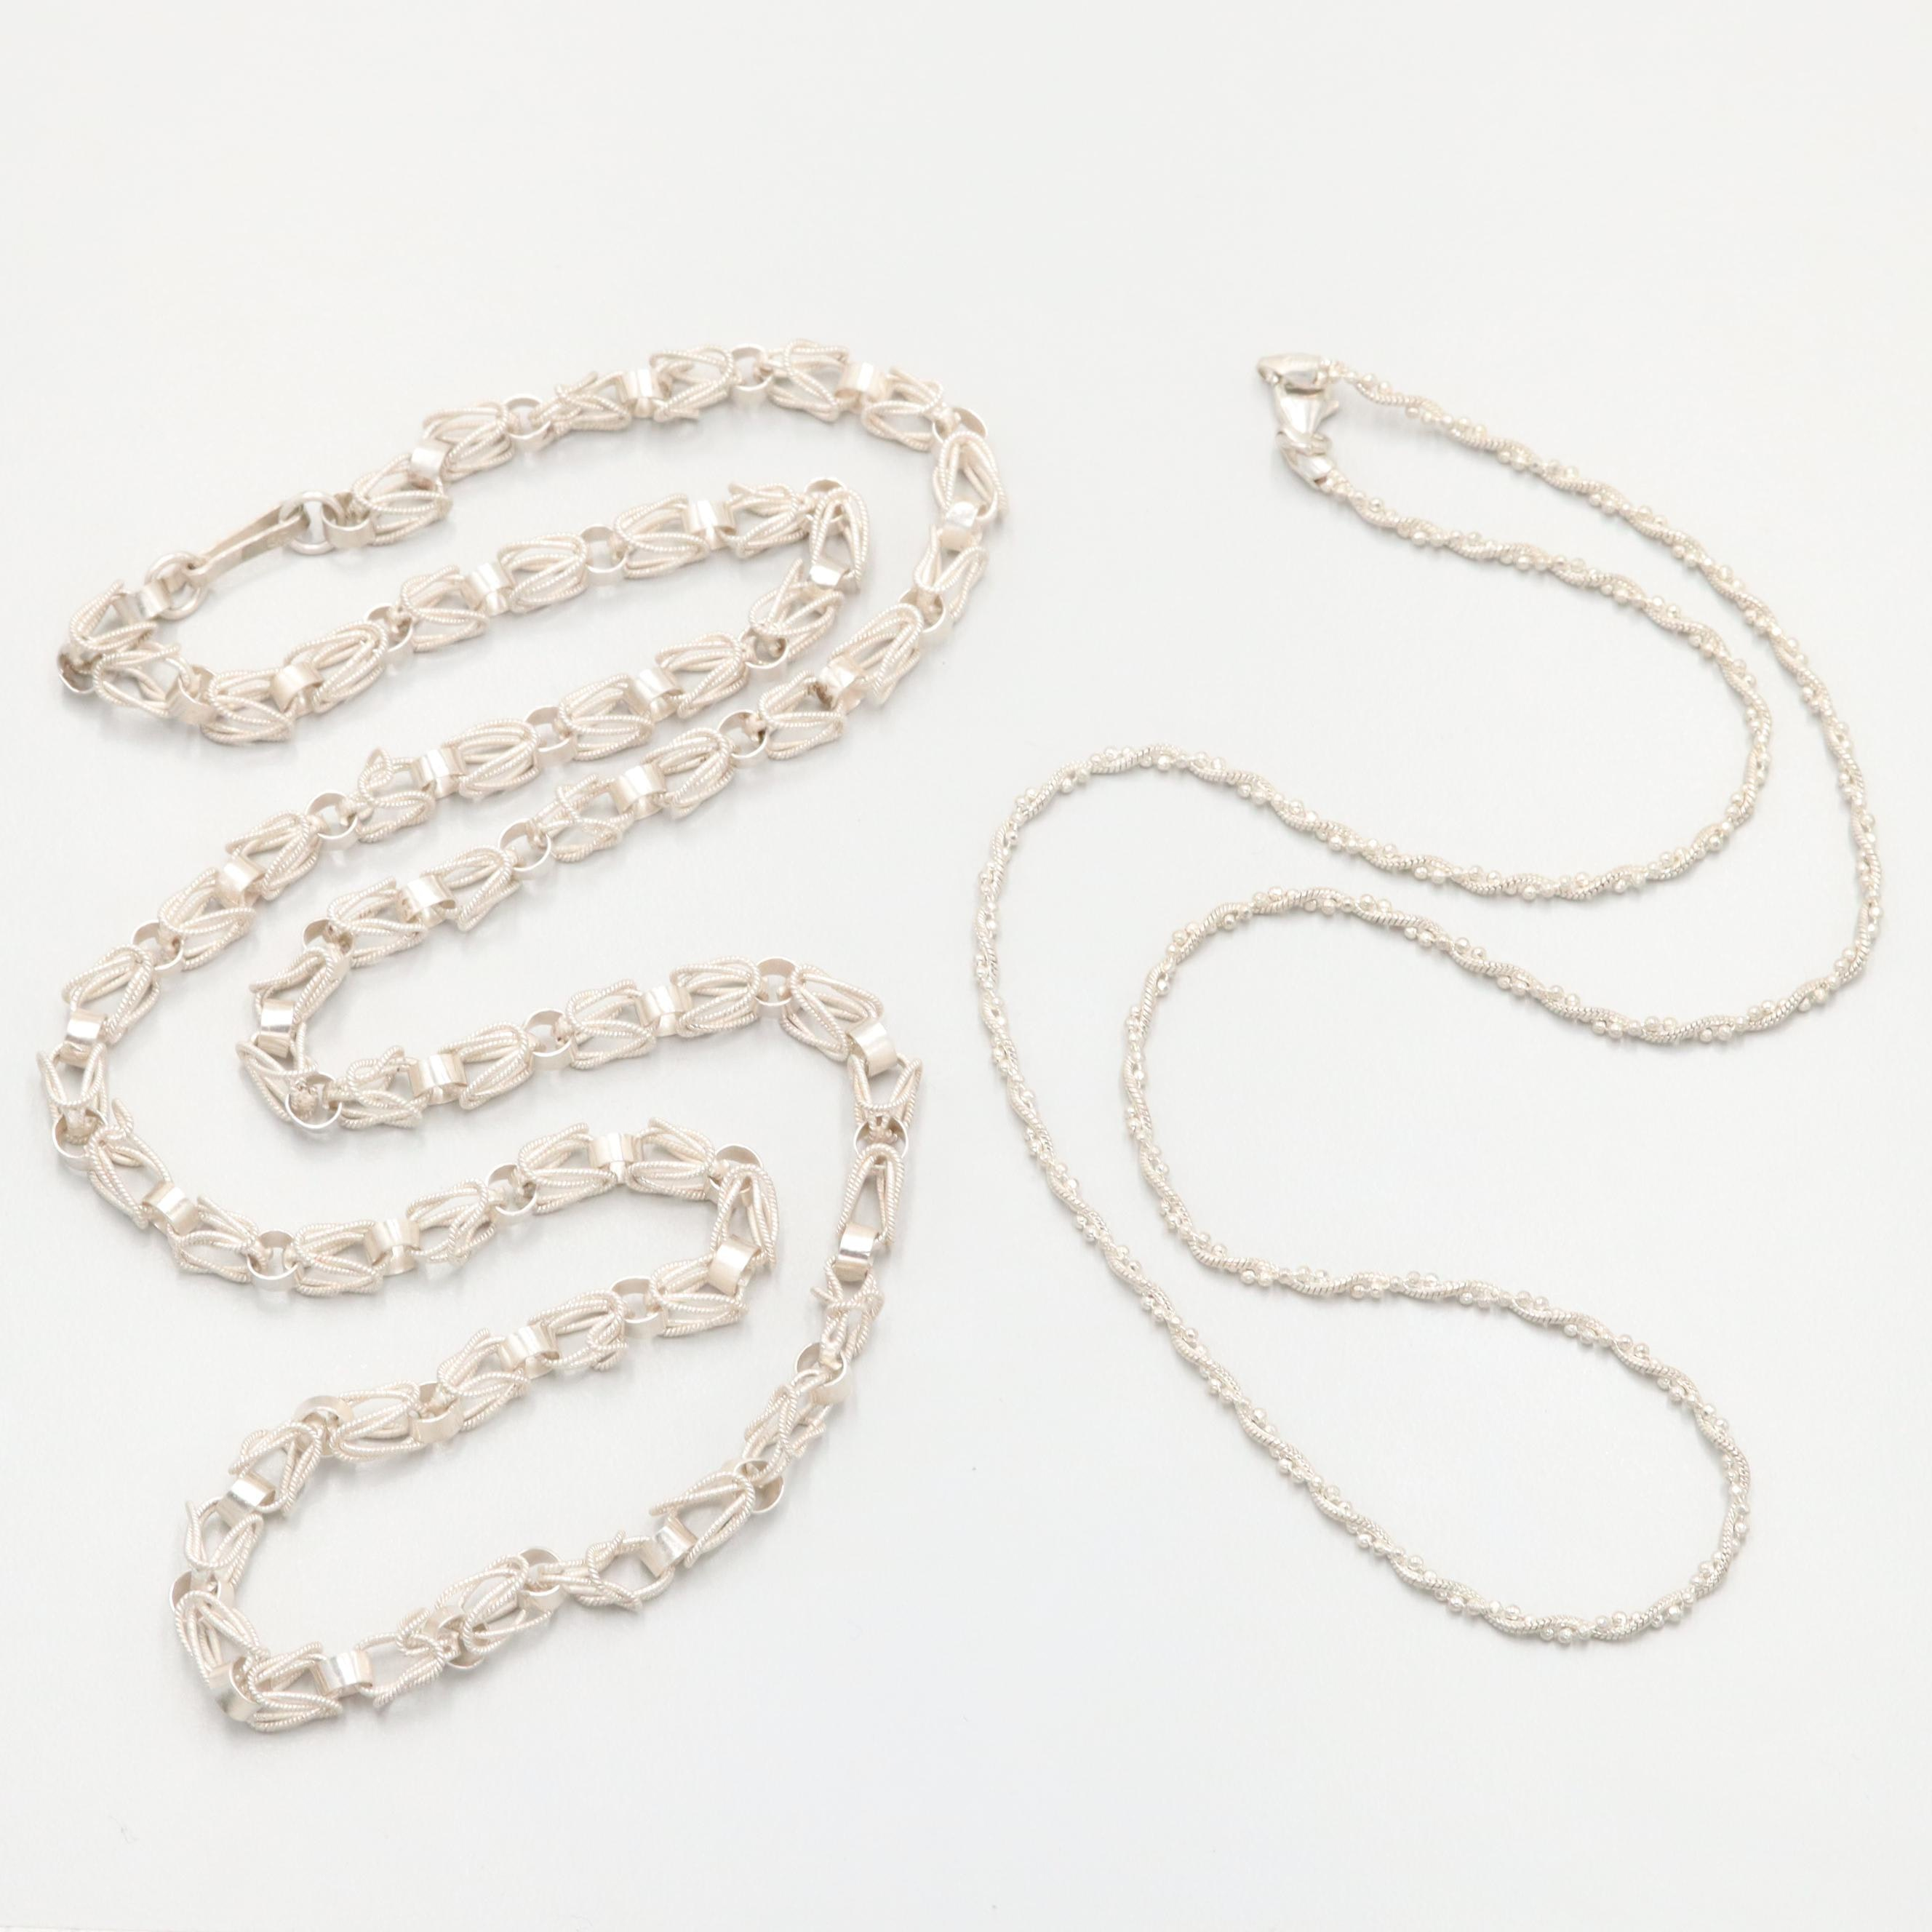 Sterling Silver Fancy Link Chain Necklaces